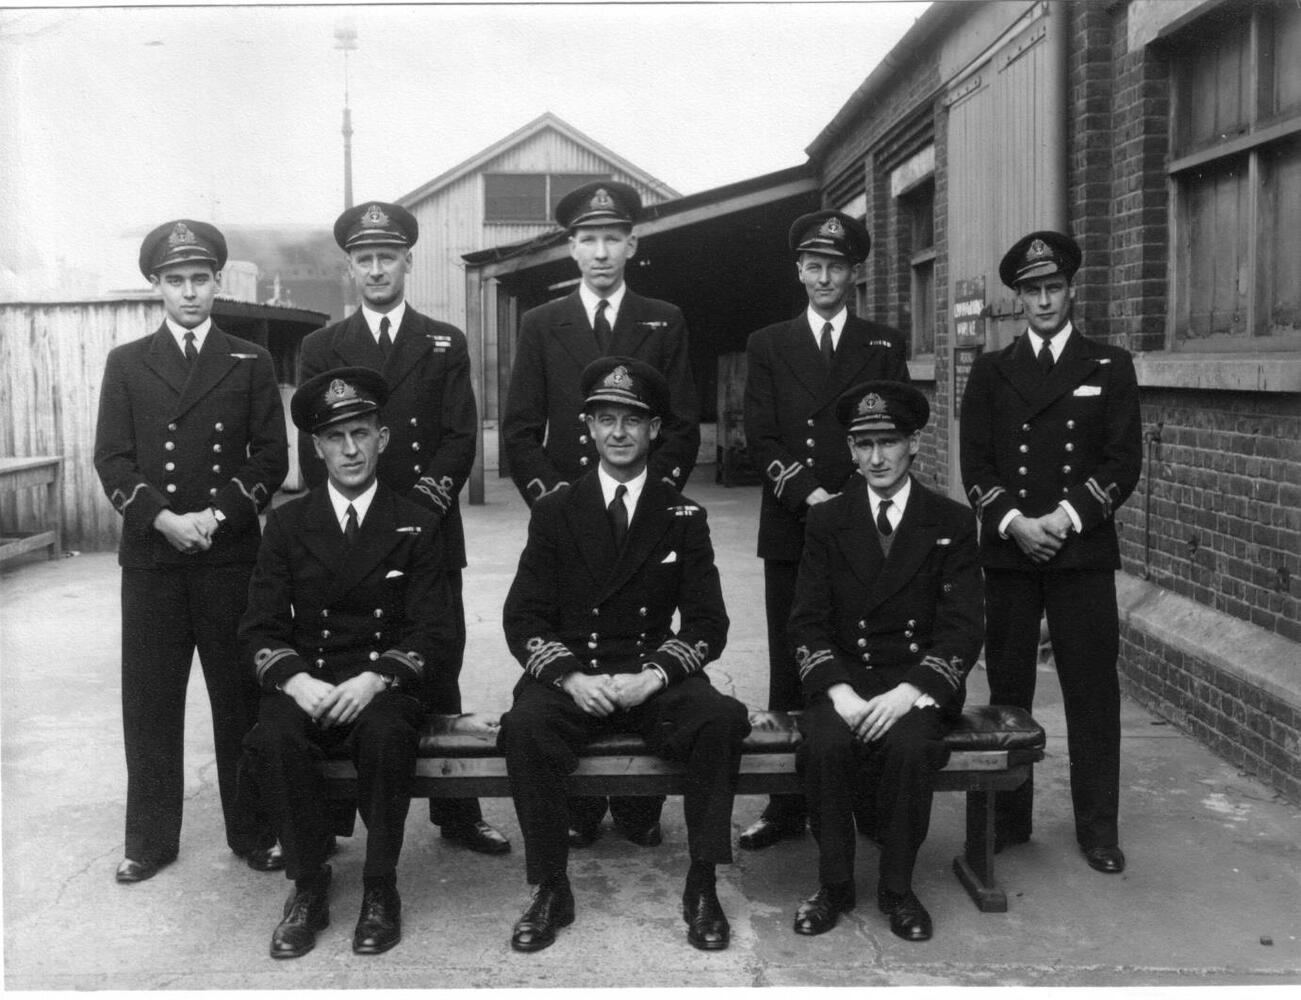 Latterly, Lieutenant A H Harvey seen centre back with officers from HMS Grecian.